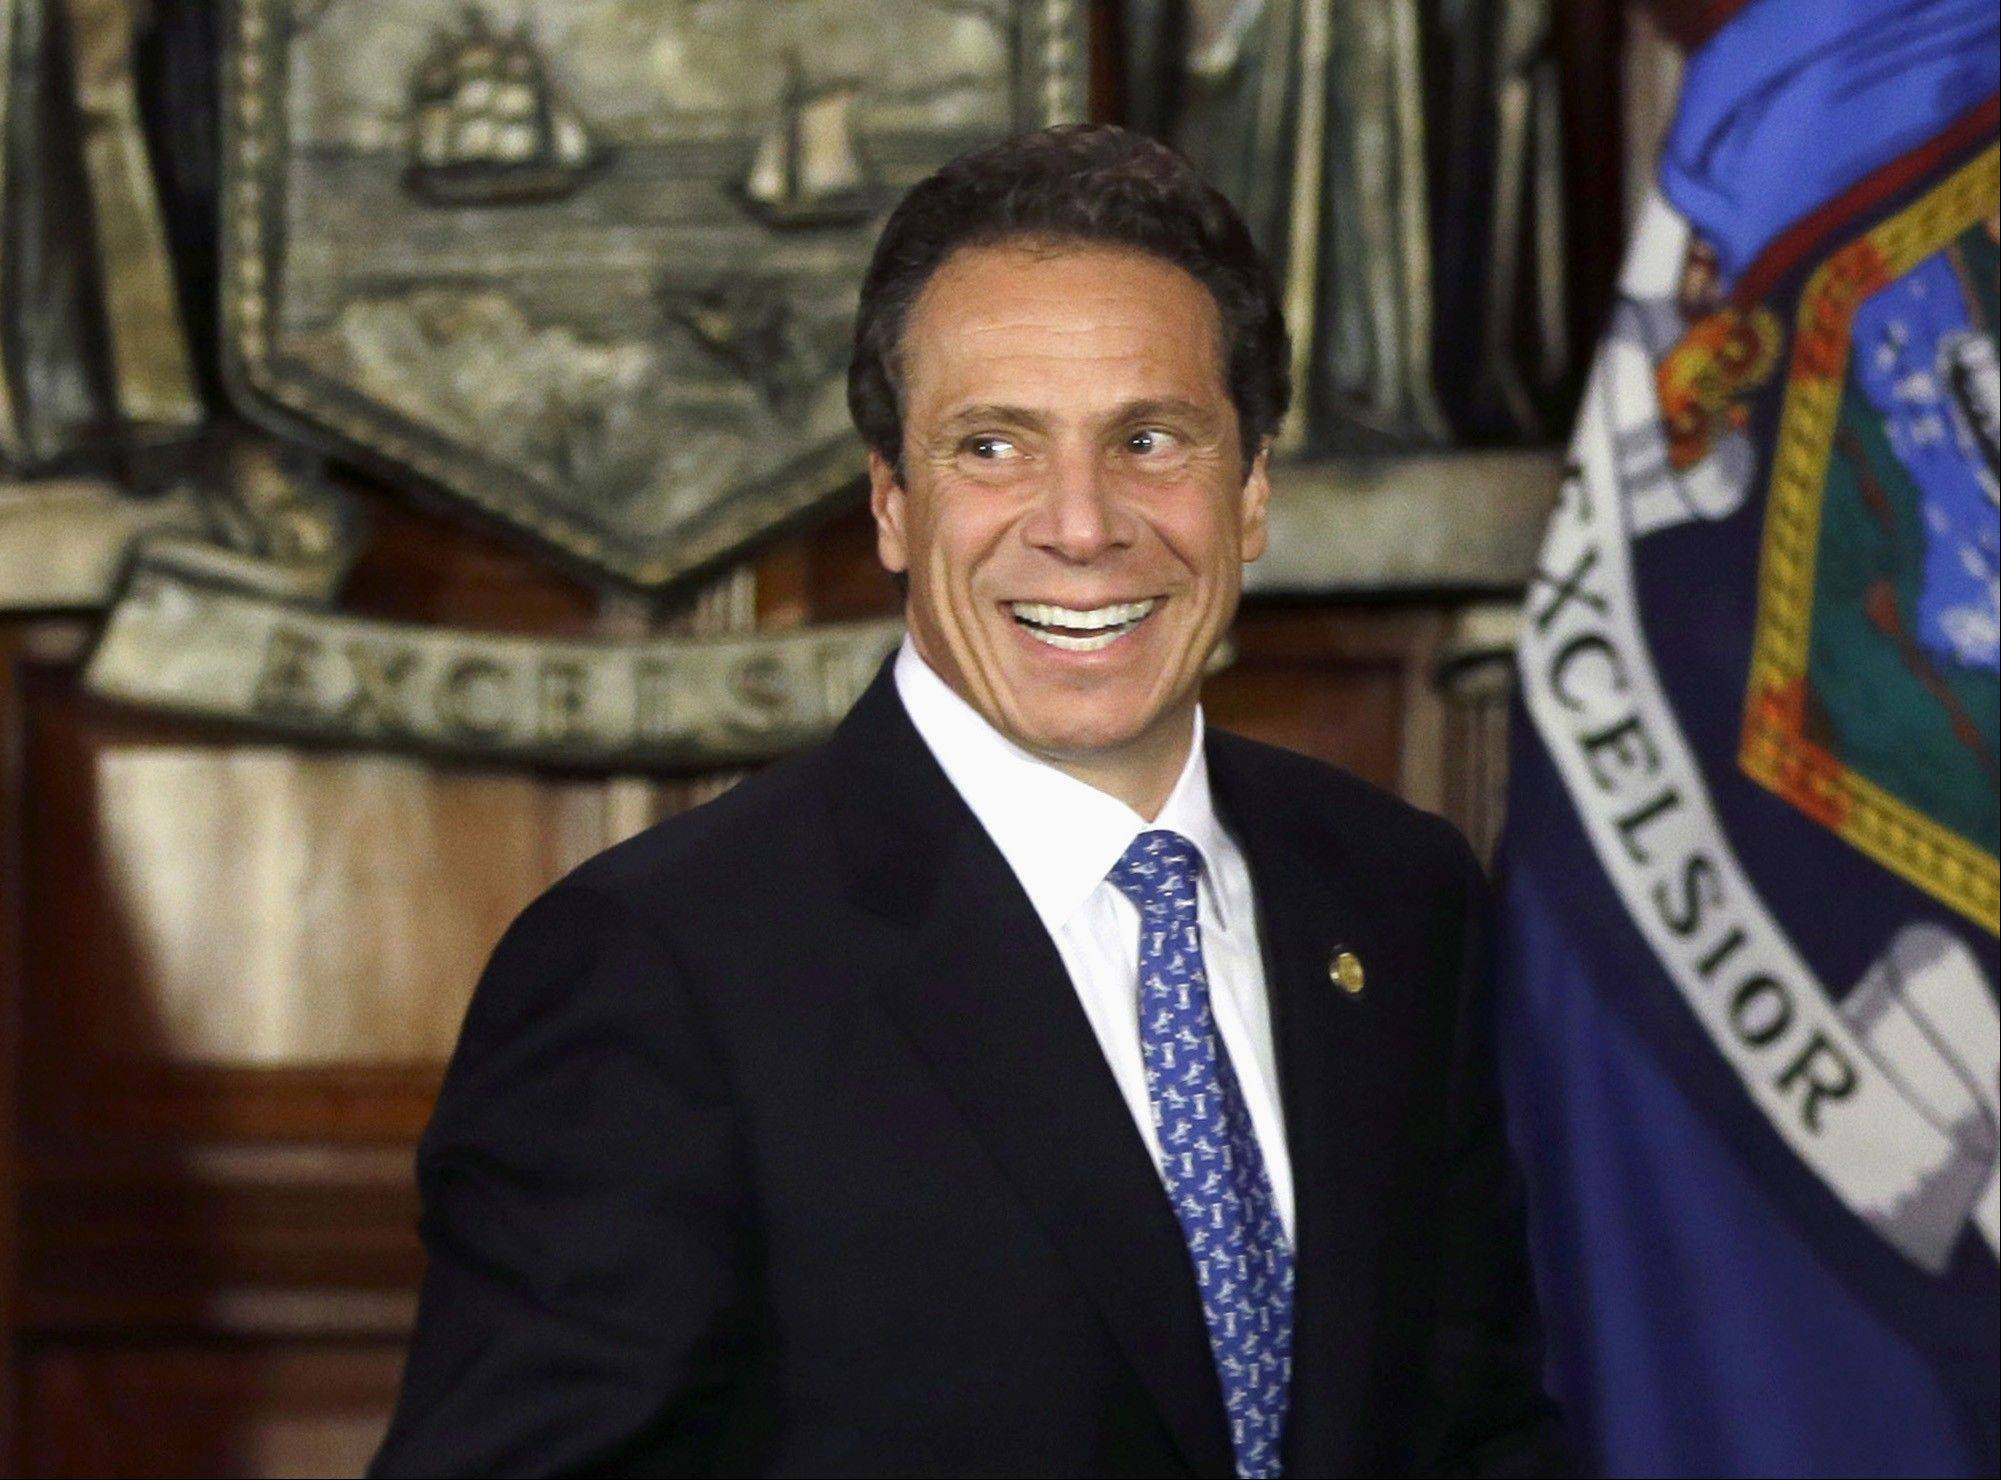 In this July 2, 2013 file photo, New York Gov. Andrew Cuomo takes part in a ceremony in Albany, N.Y. Get your face on TV and write a book: Check. Start meeting the big money people: Check. Visit Iowa, New Hampshire, South Carolina _ Israel, too: Check. Deny any of this has to do with running for president: Check. For politicians planning or tempted to run for the presidency in 2016, the to-do list is formidable. What�s striking is how methodically most of them are plowing through it while they pretend nothing of the sort is going on.